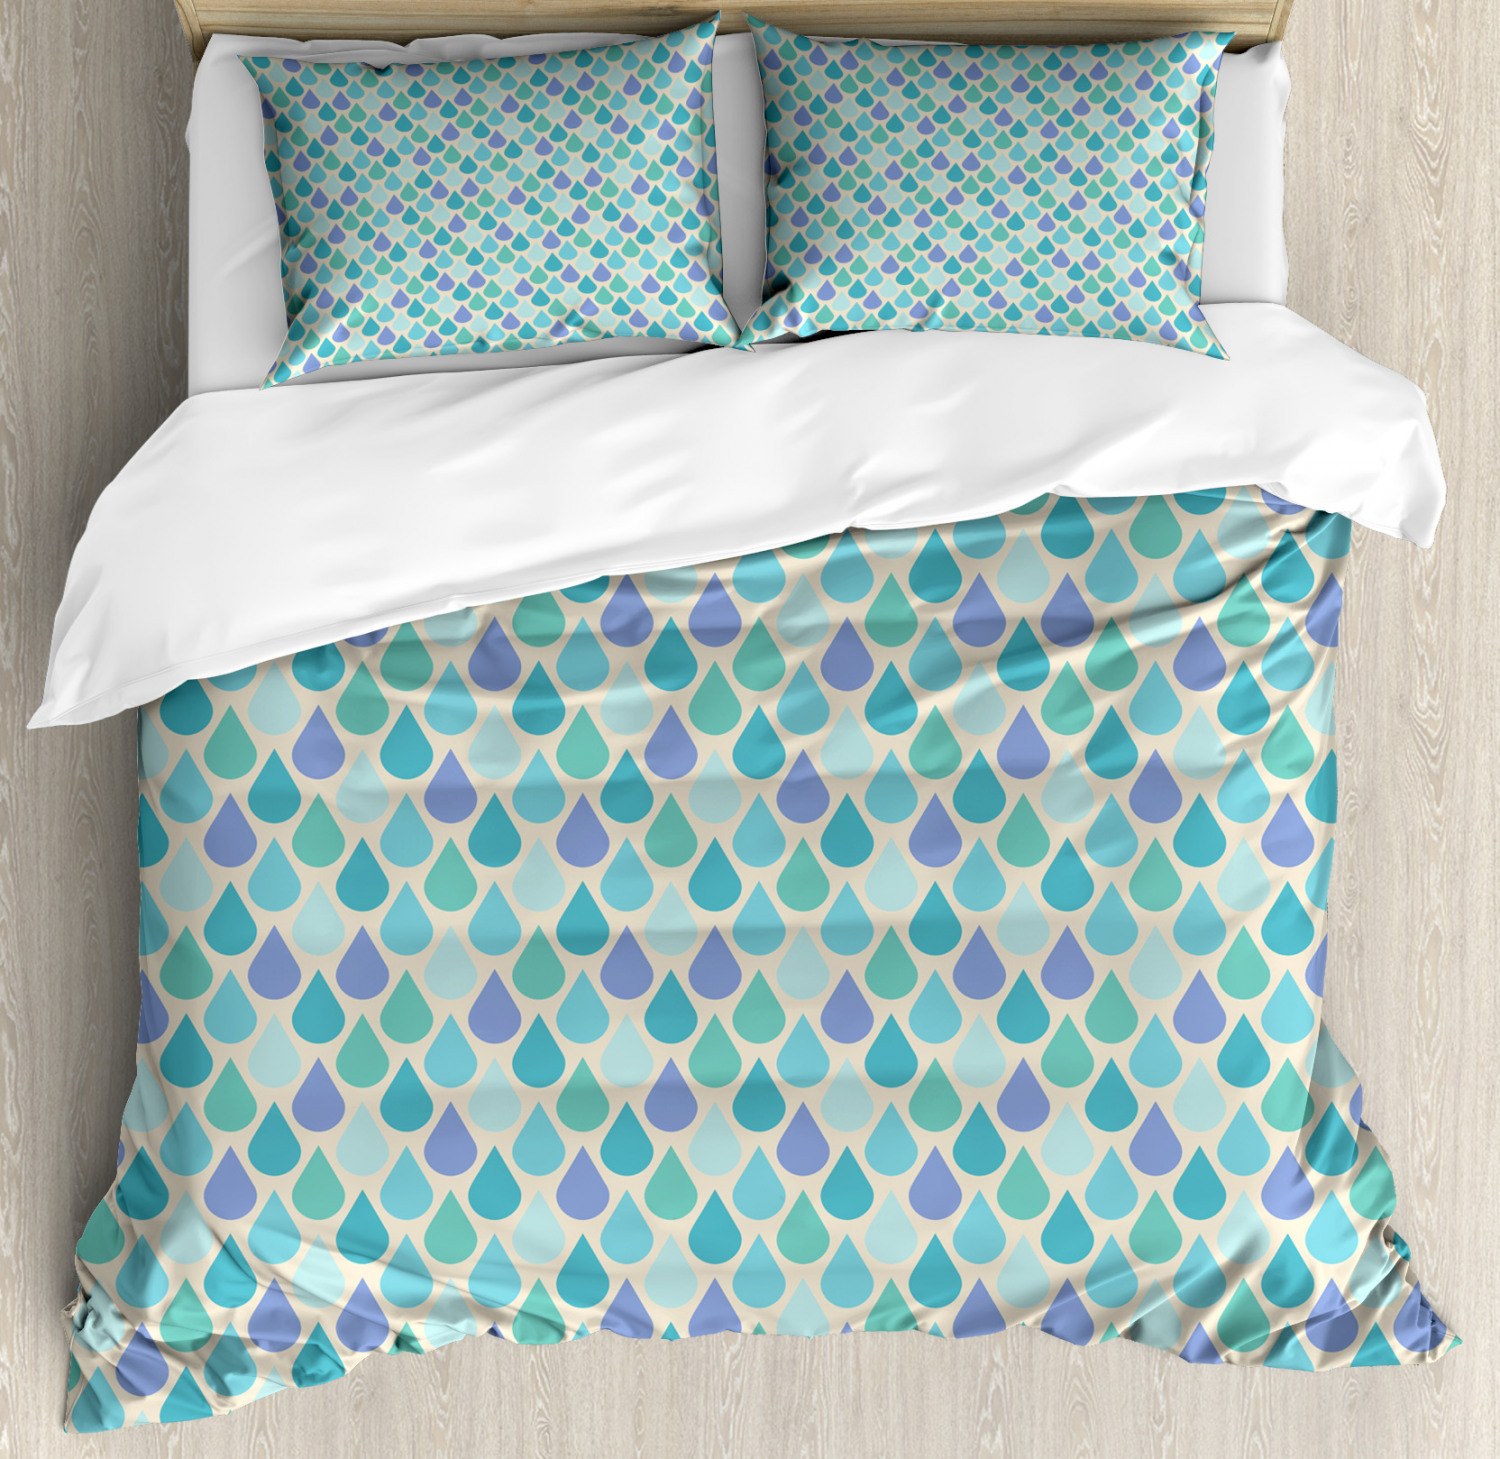 Teal Duvet Cover Set with Pillow Shams Coloreeful Water Droplets Print